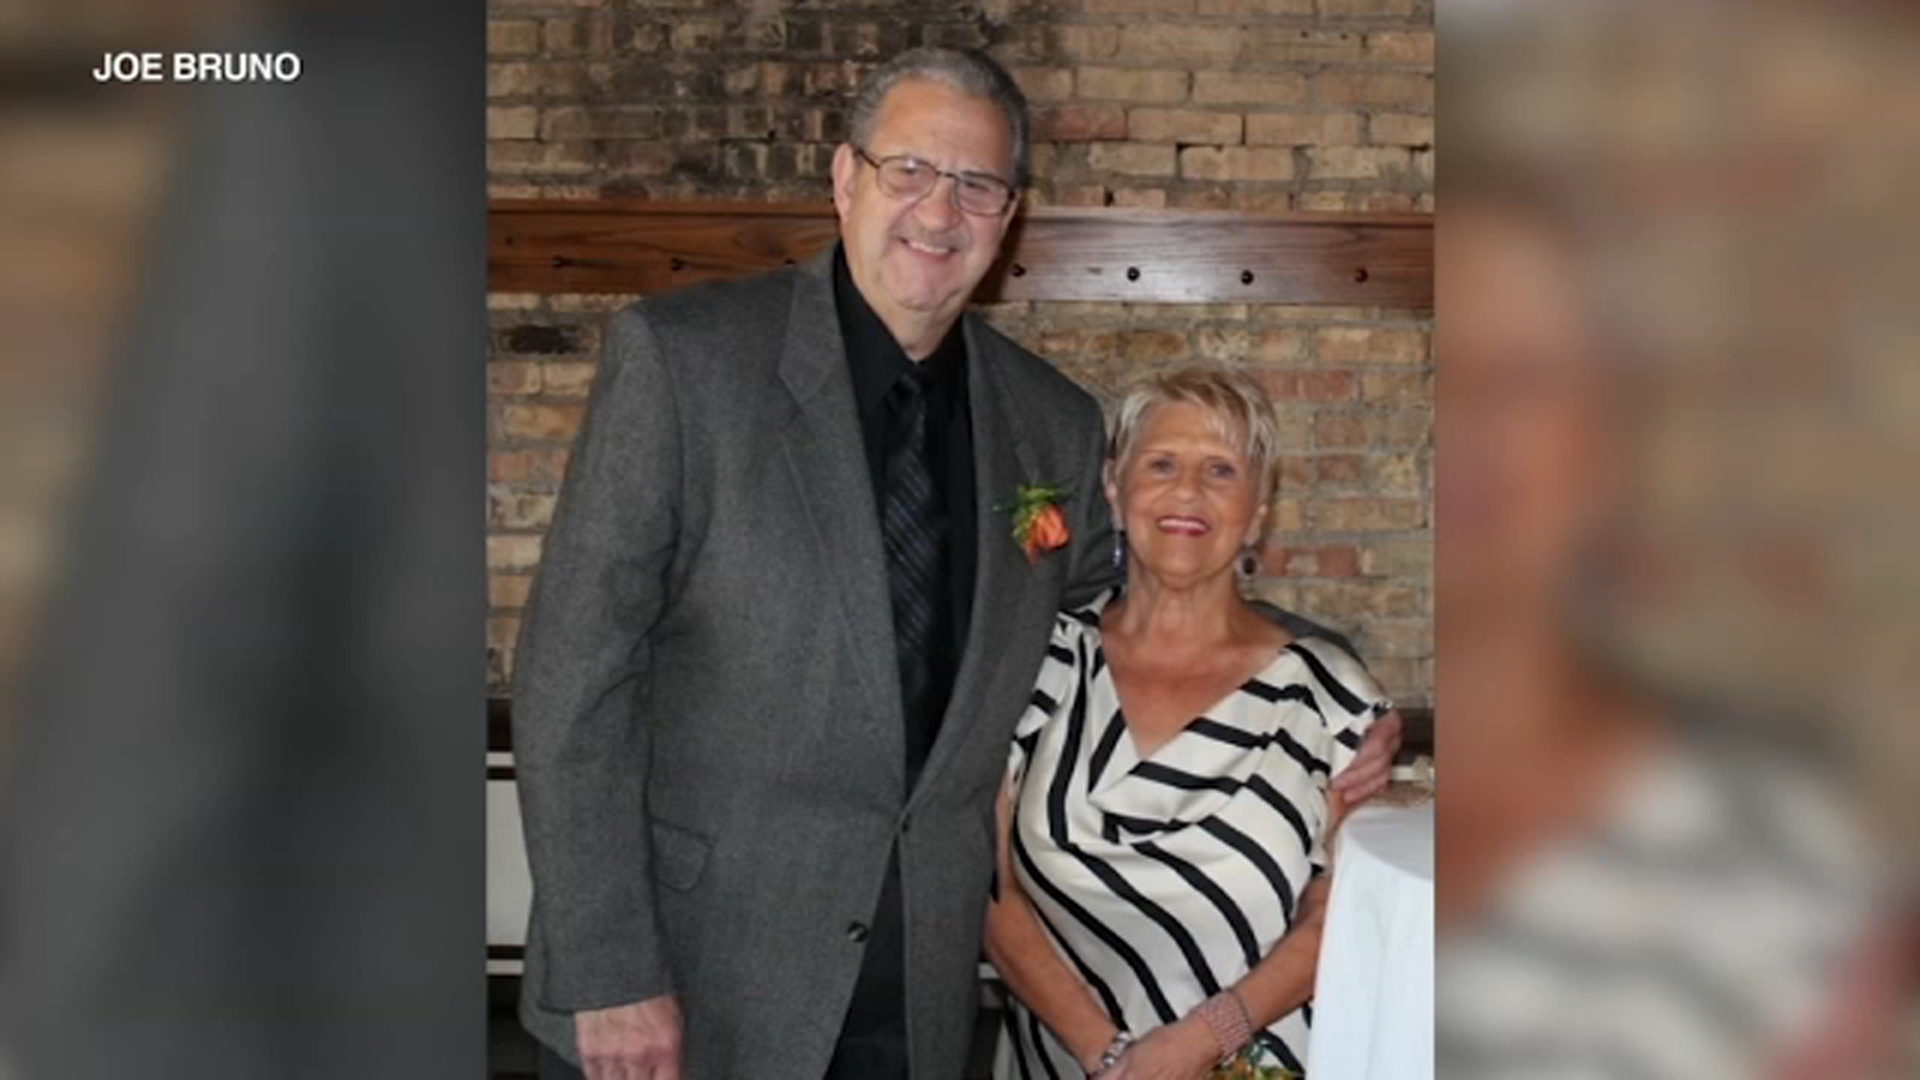 Covid Deaths Chicago Family Warns Of Short Visits After Losing Mother Father To Coronavirus After Haircut Abc7 Chicago Reporter joe bruno interviews facility's ceo. covid deaths chicago family warns of